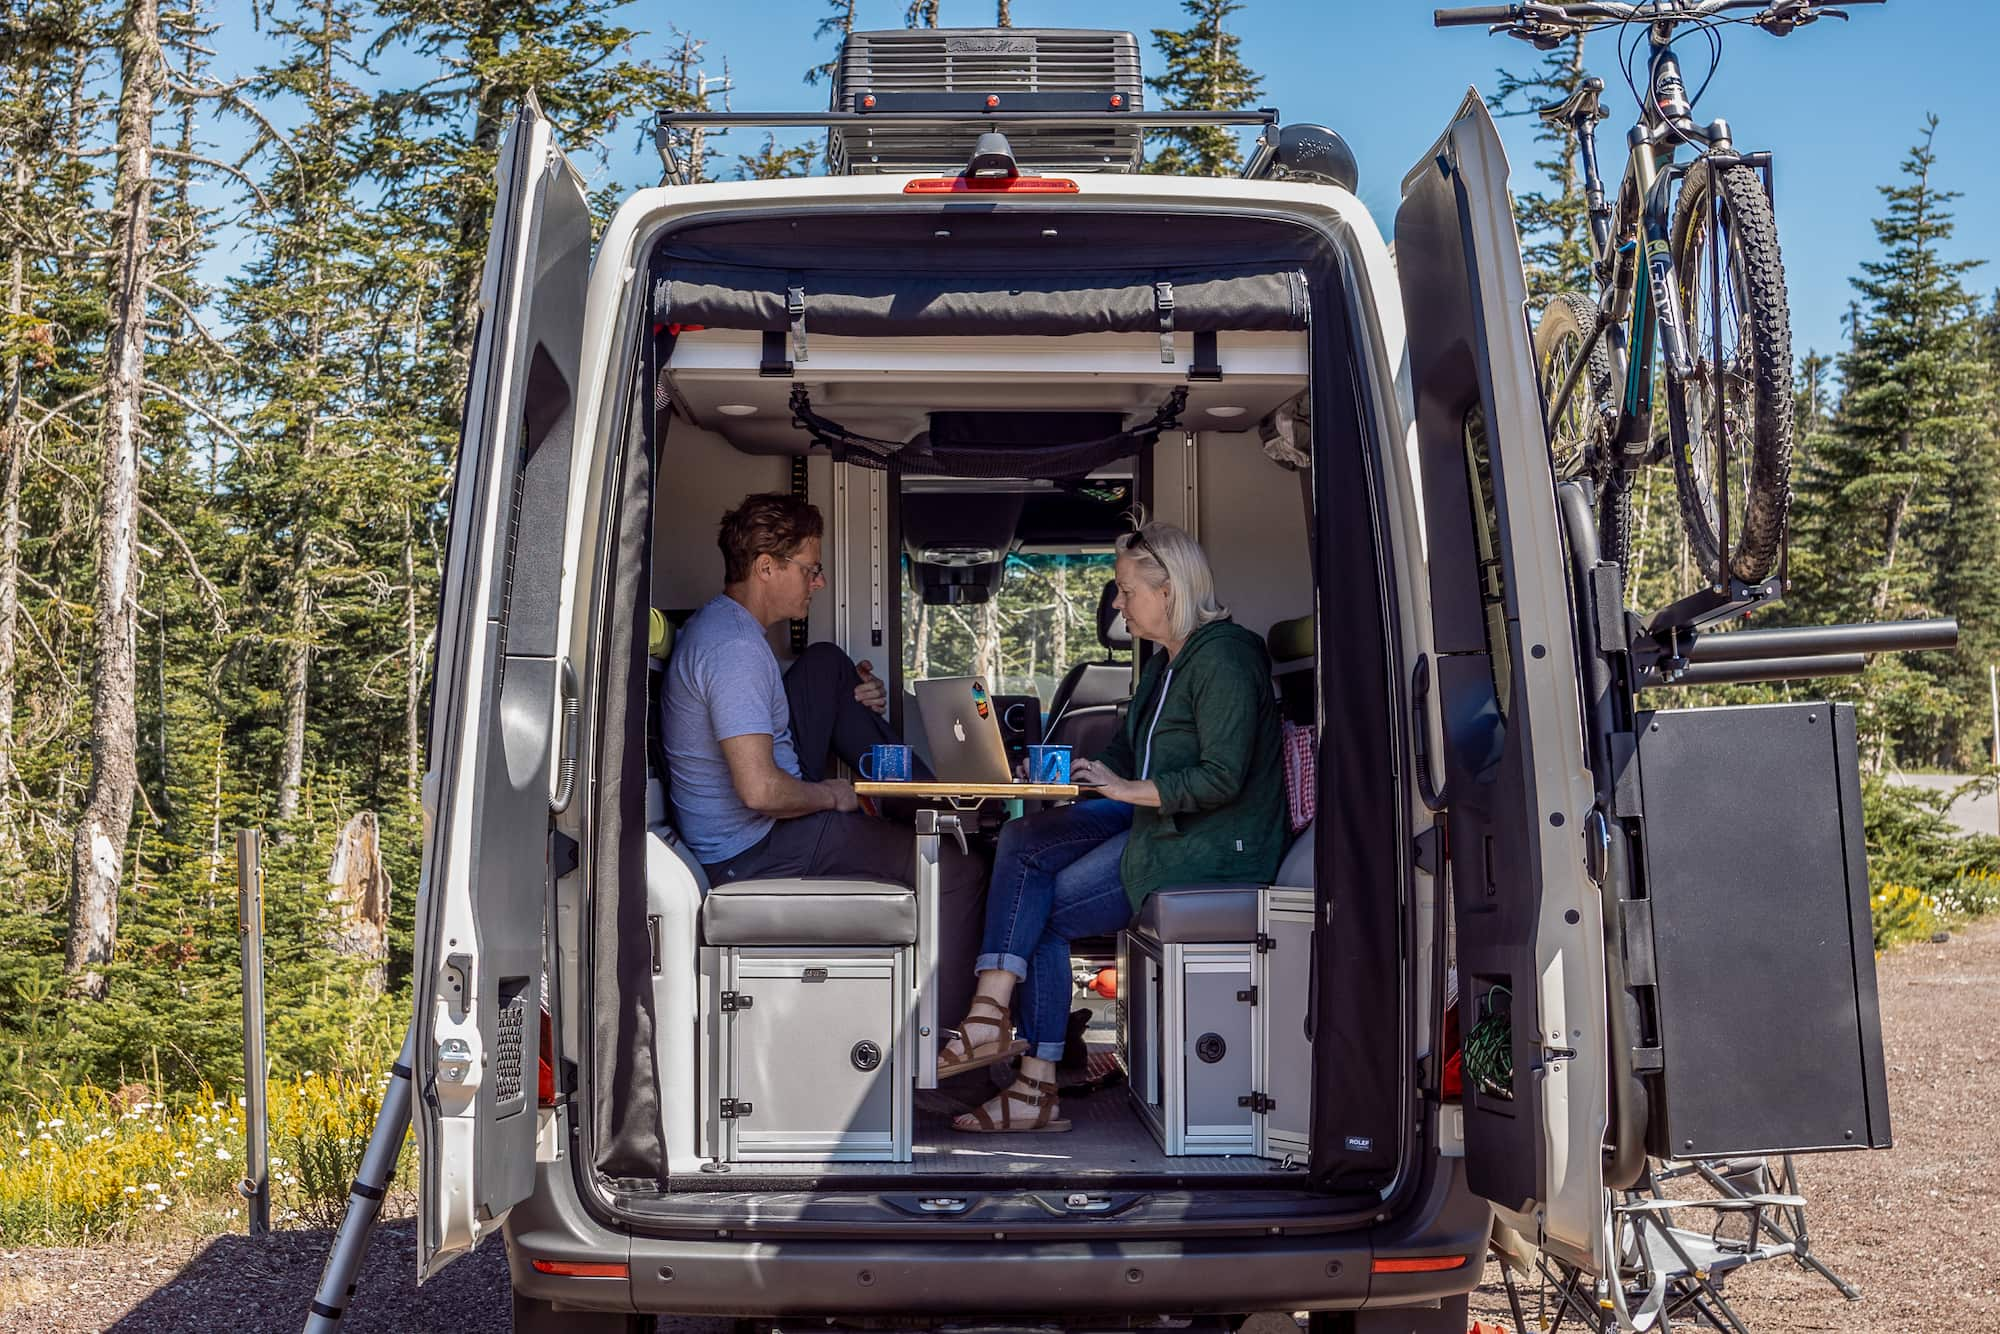 The Dyrt founders Kevin Long and Sarah Smith working remotely from their camper van.